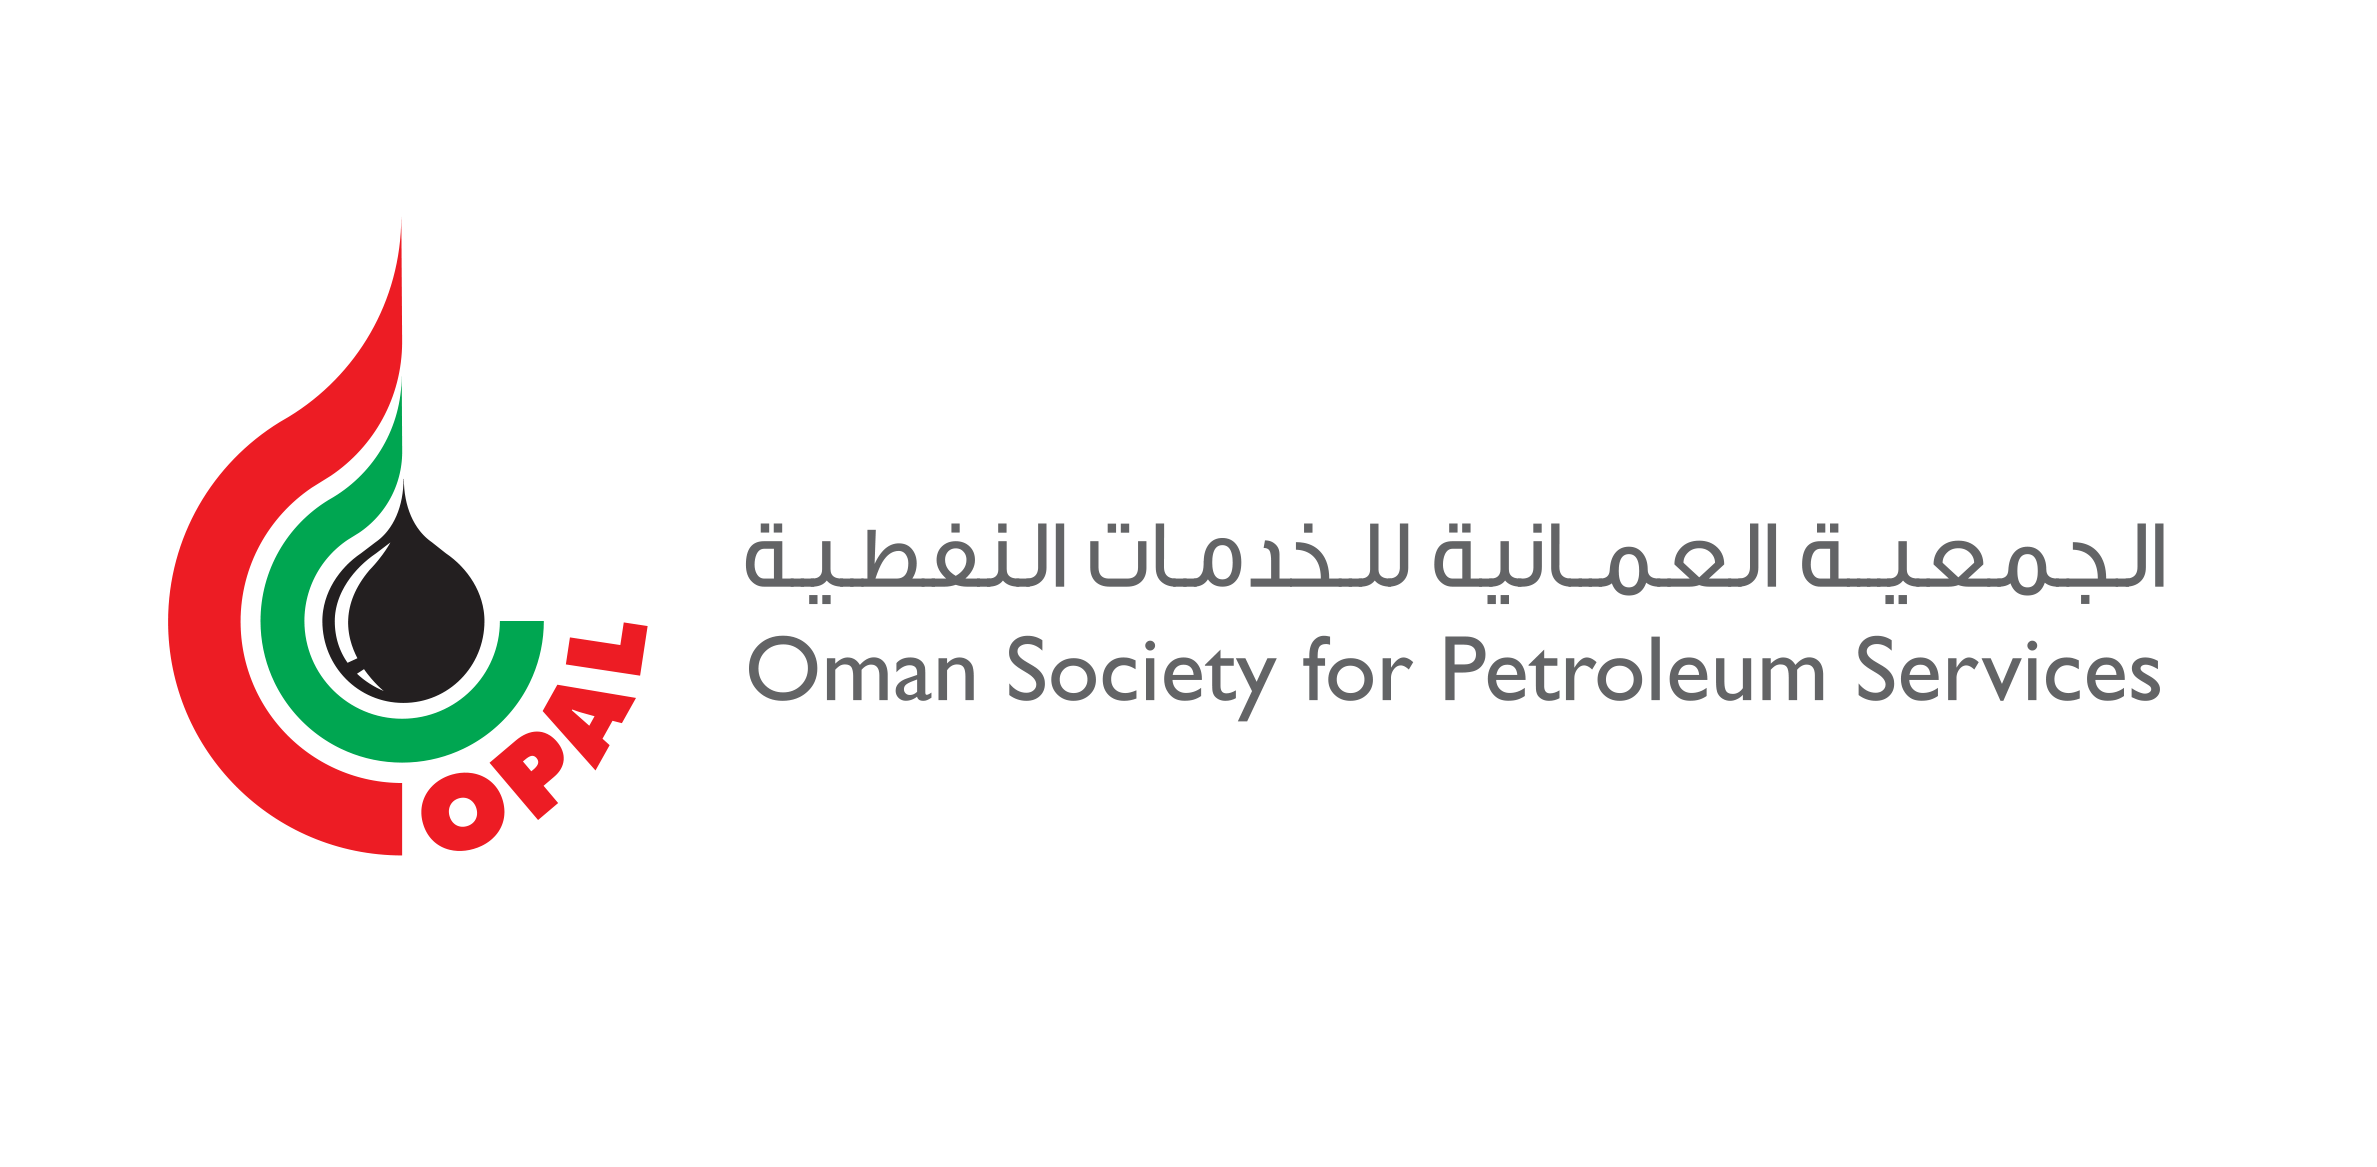 Oman Society for Petroleum Services